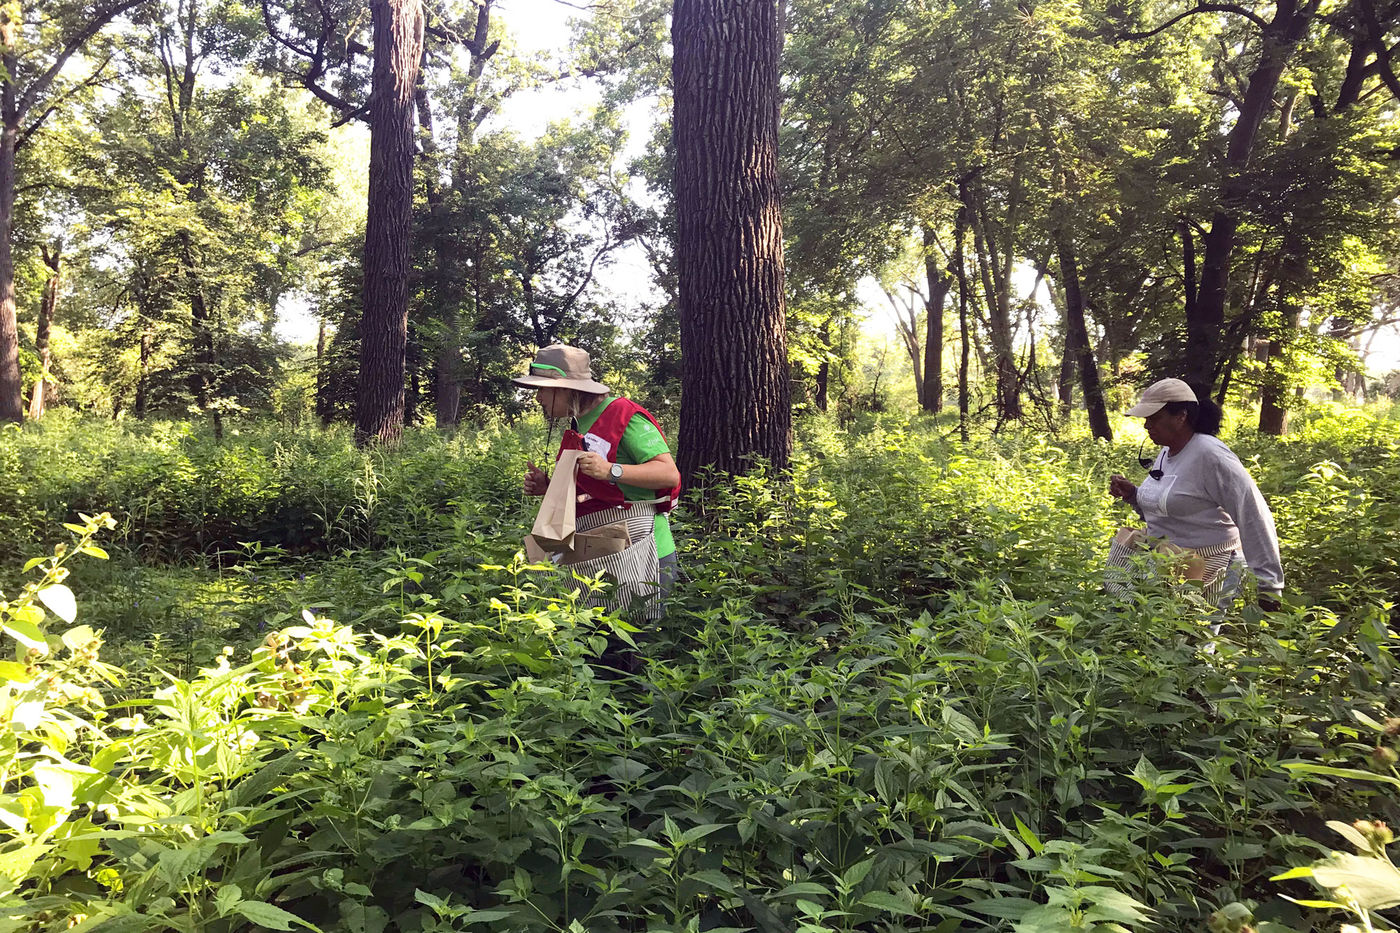 Two women wearing hats walk through a forest where plants are waist-high. Some larger trees are behind them, and the area is mostly shady.